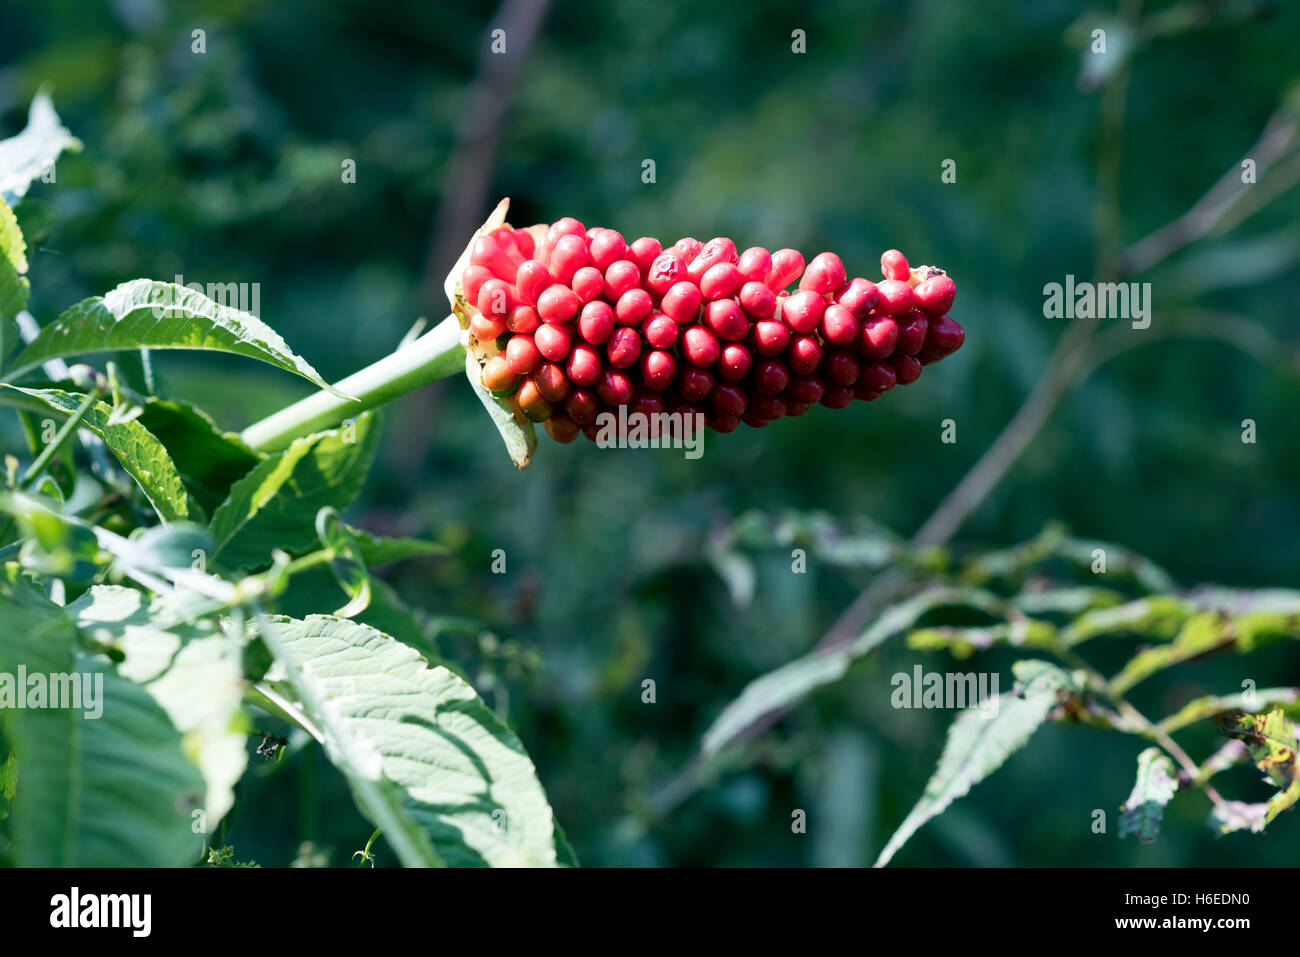 "Himalayan wild fruit ""Spadoo"" that causes swelling of mouth. - Stock Image"